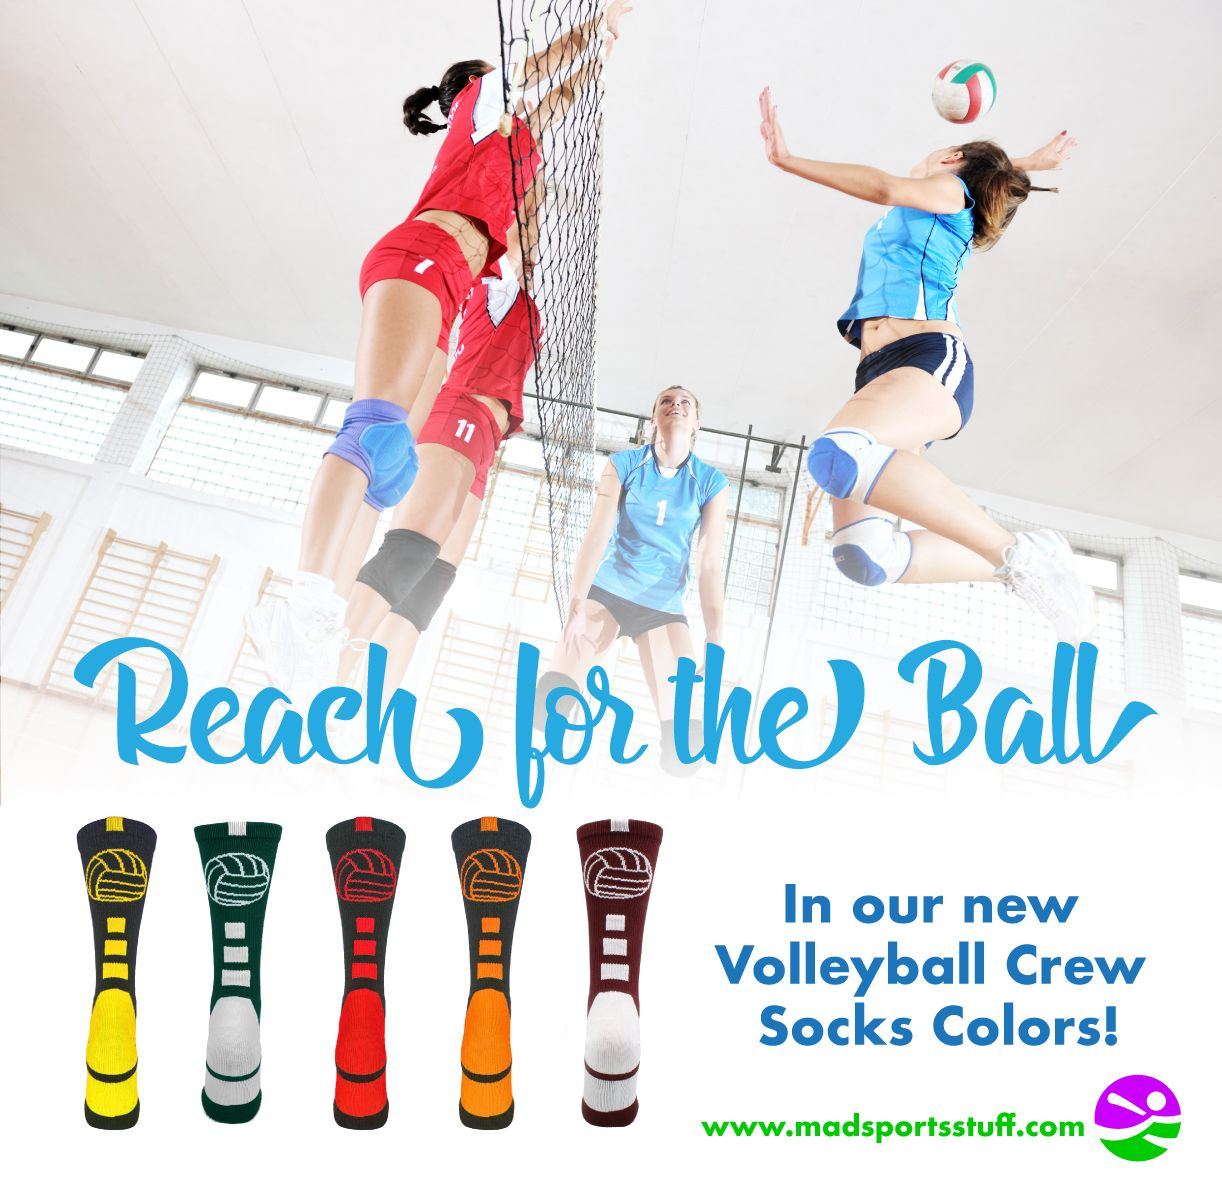 Crew Volleyball Socks With Logo Multiple Colors Basketball Shorts Girls Volleyball Socks Usc Basketball